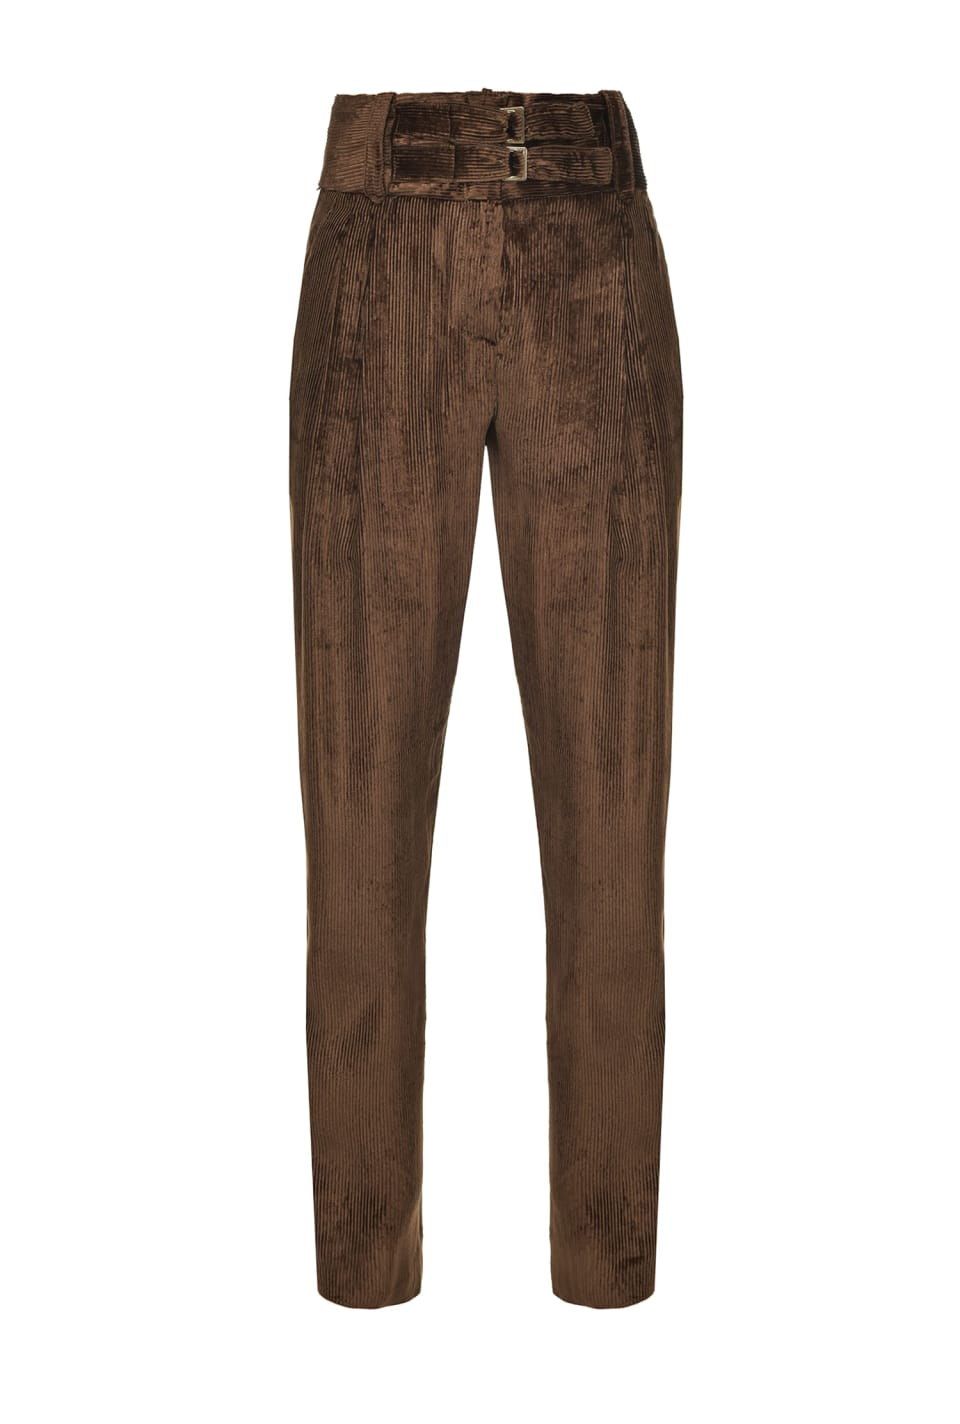 Ribbed corduroy trousers - Pinko